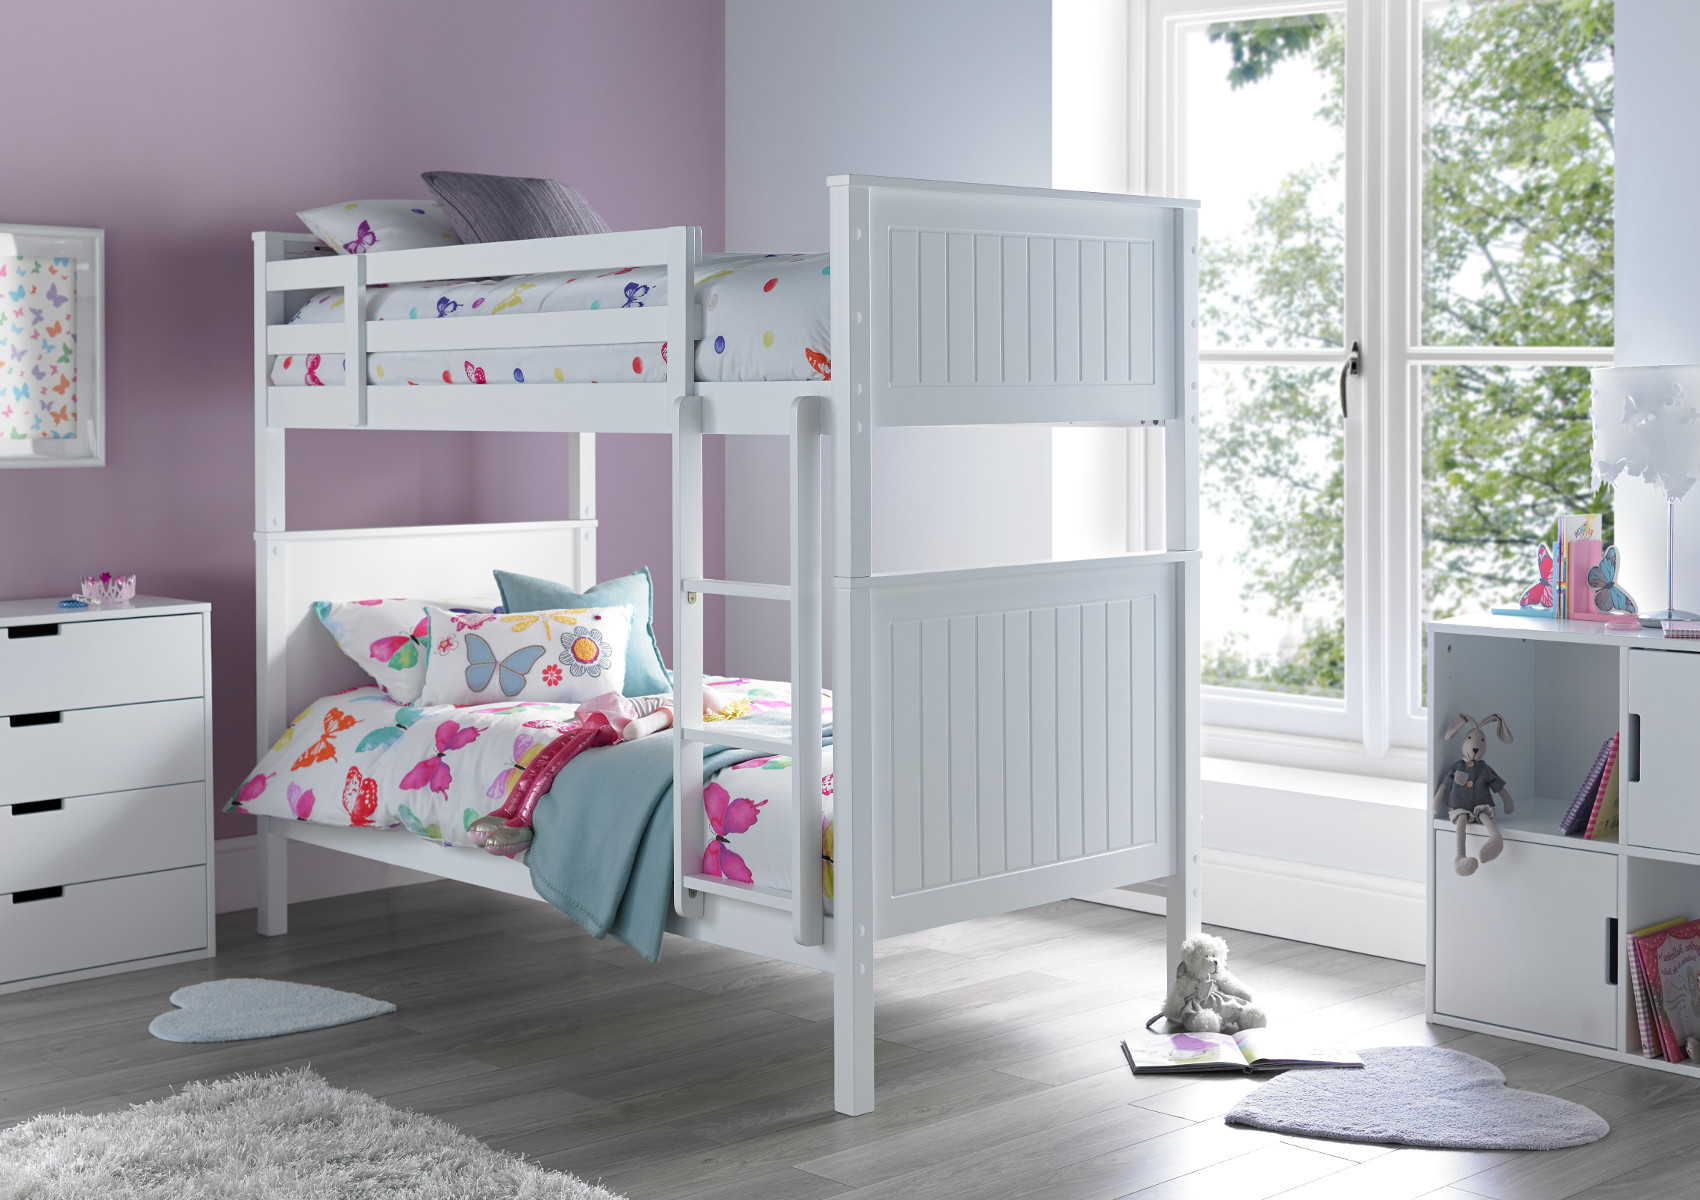 Types Of Beds Different Bed Frame Types Time4sleep